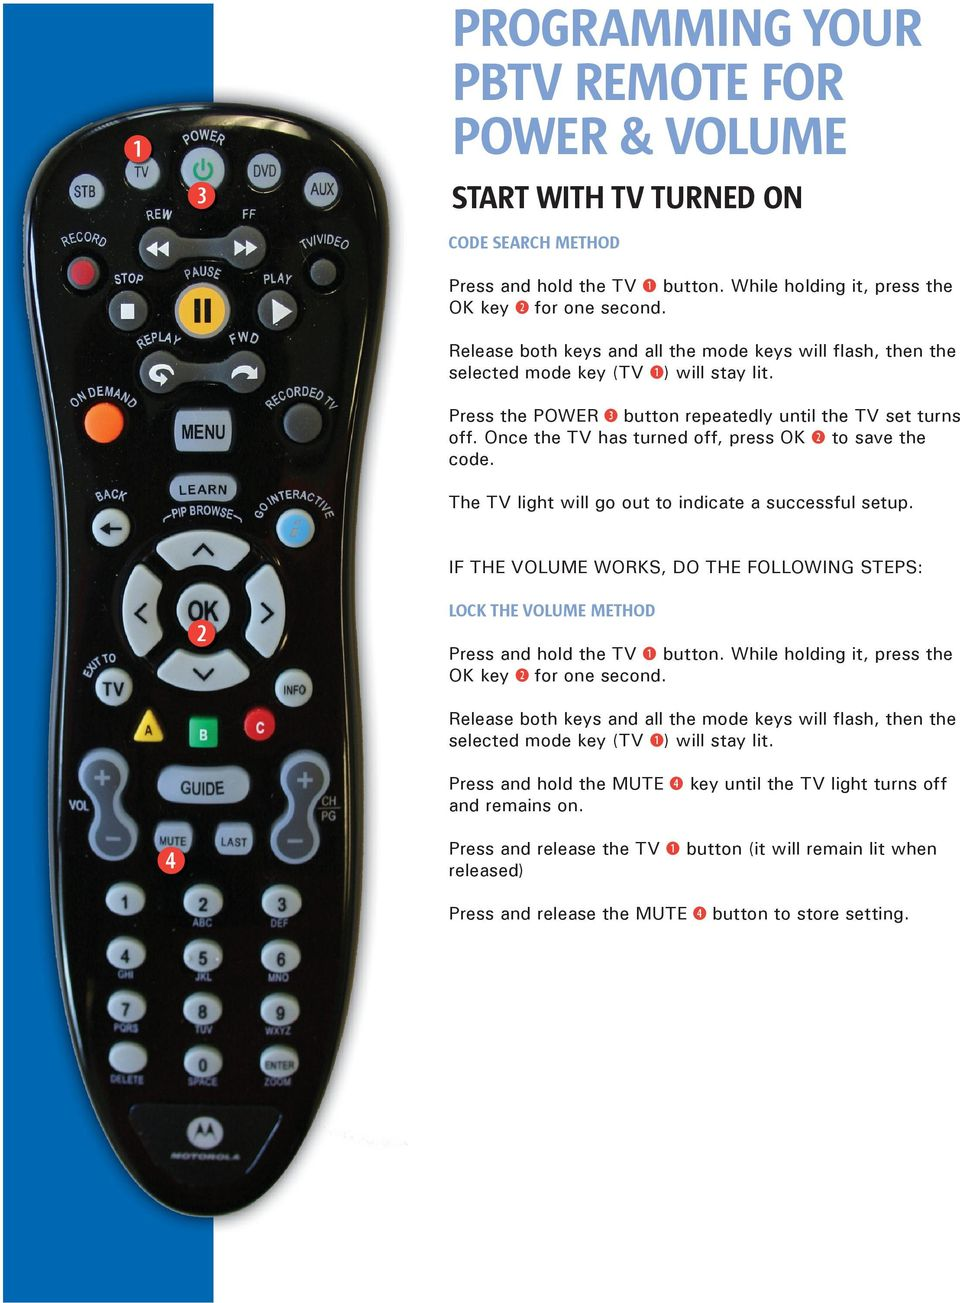 PROGRAMMING YOUR PBTV REMOTE FOR POWER & VOLUME - PDF